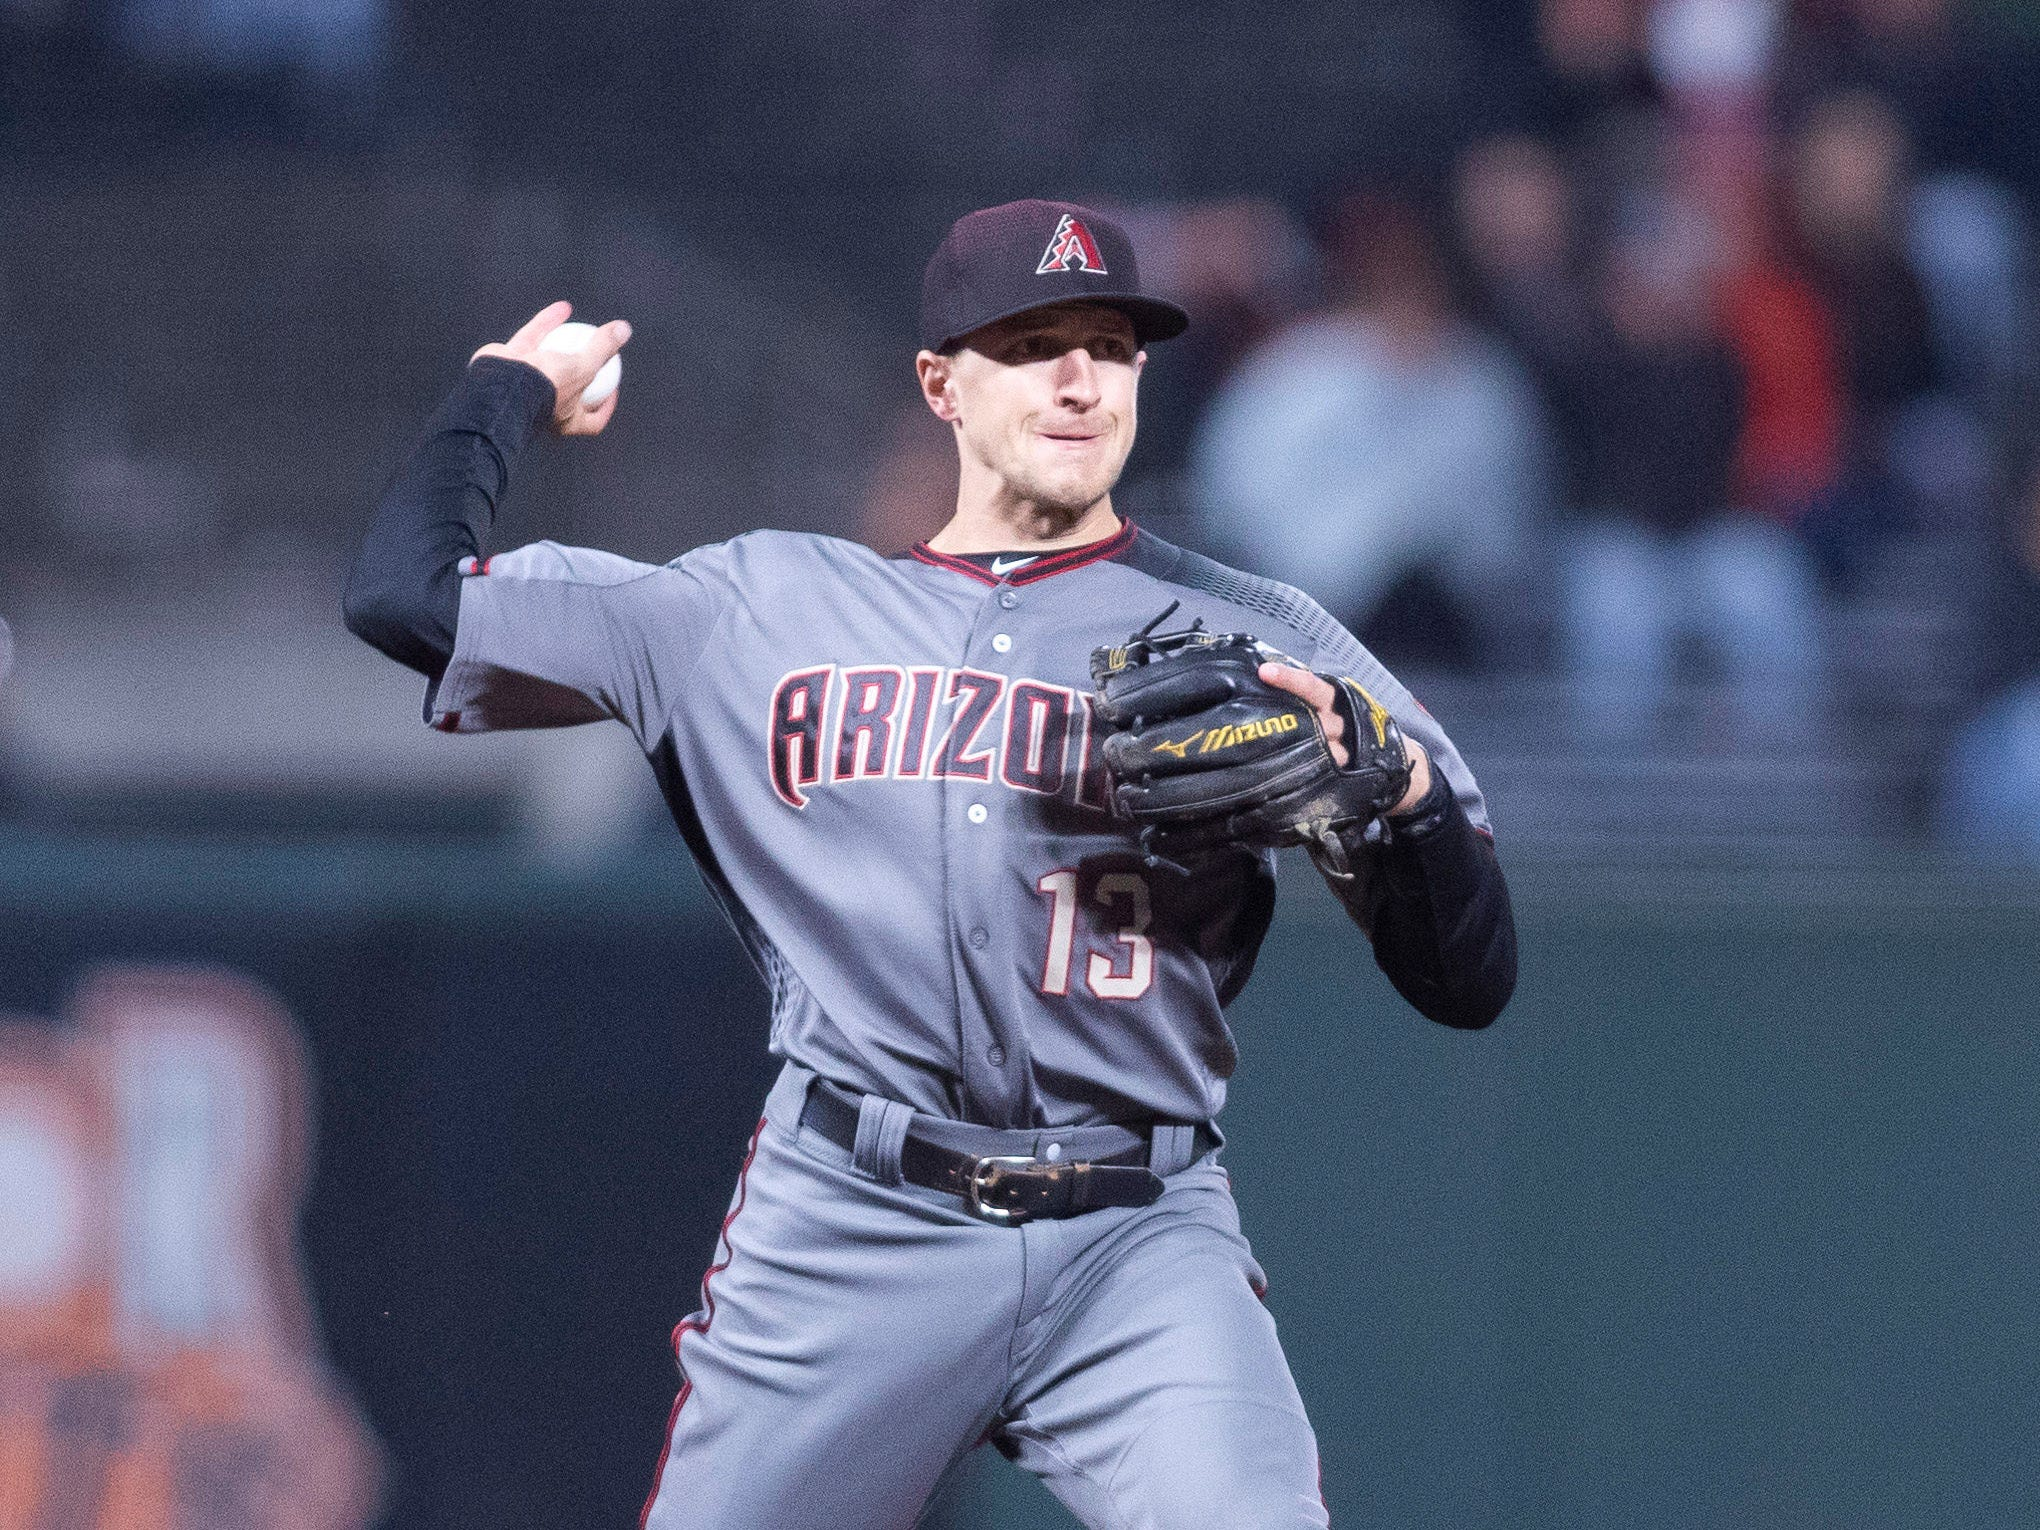 Aug 27, 2018: Arizona Diamondbacks shortstop Nick Ahmed (13) throws to retire San Francisco Giants right fielder Andrew McCutchen (not pictured) during the eighth inning at AT&T Park.